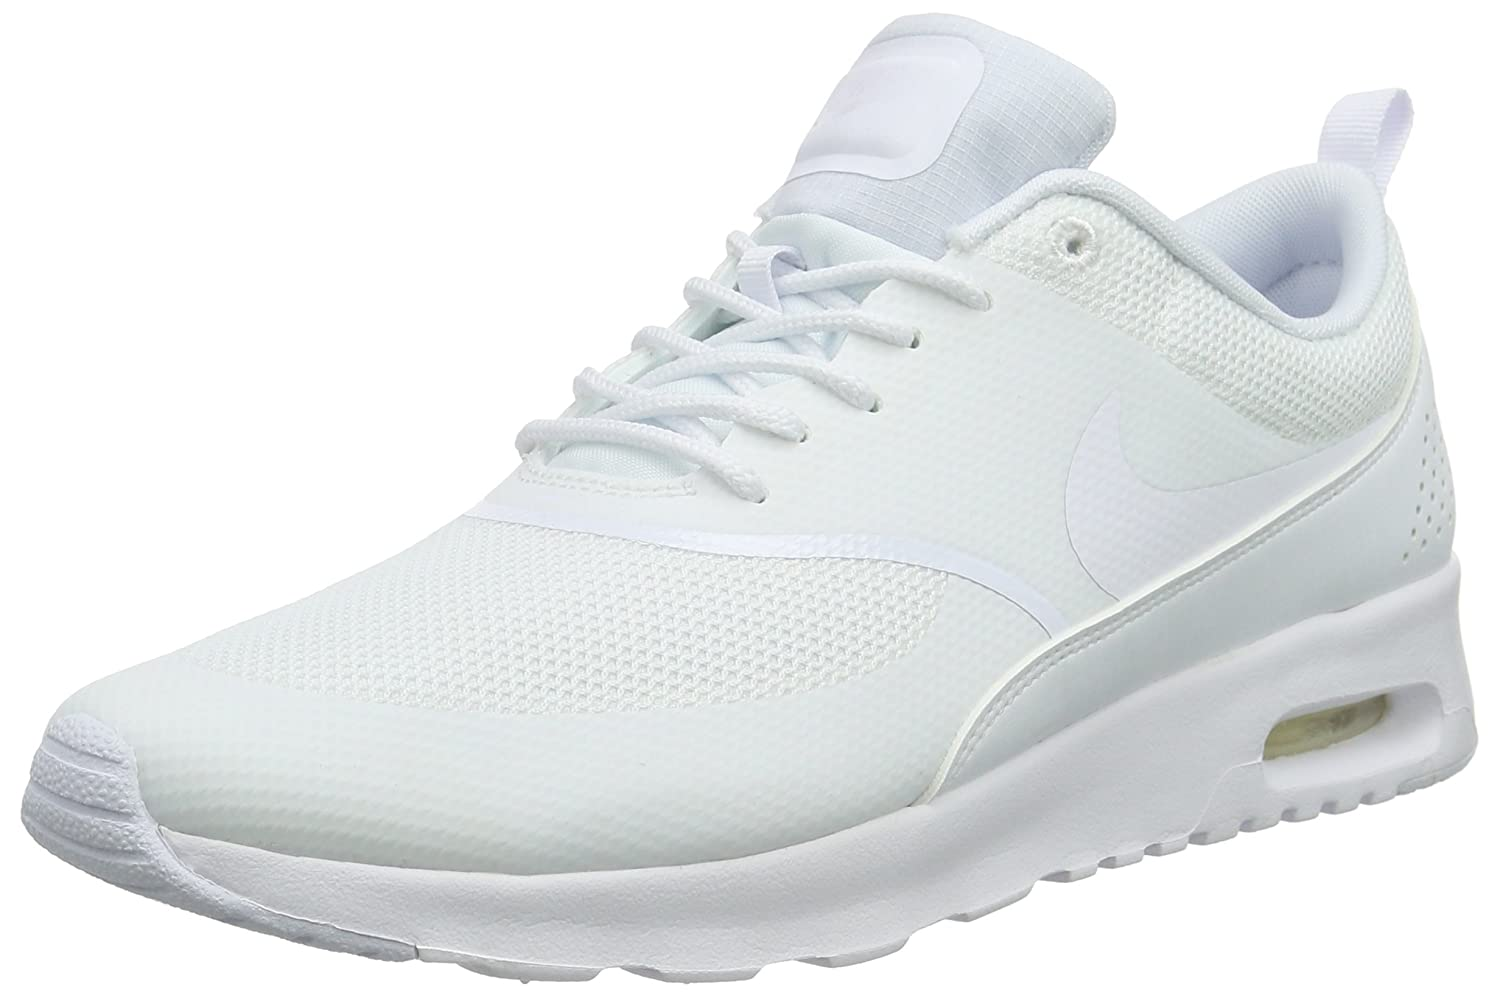 half off b0340 e309a Nike Air Max Thea, Women Low-Top Sneakers, White (White White), 8.5 UK (43  EU)  Amazon.co.uk  Shoes   Bags